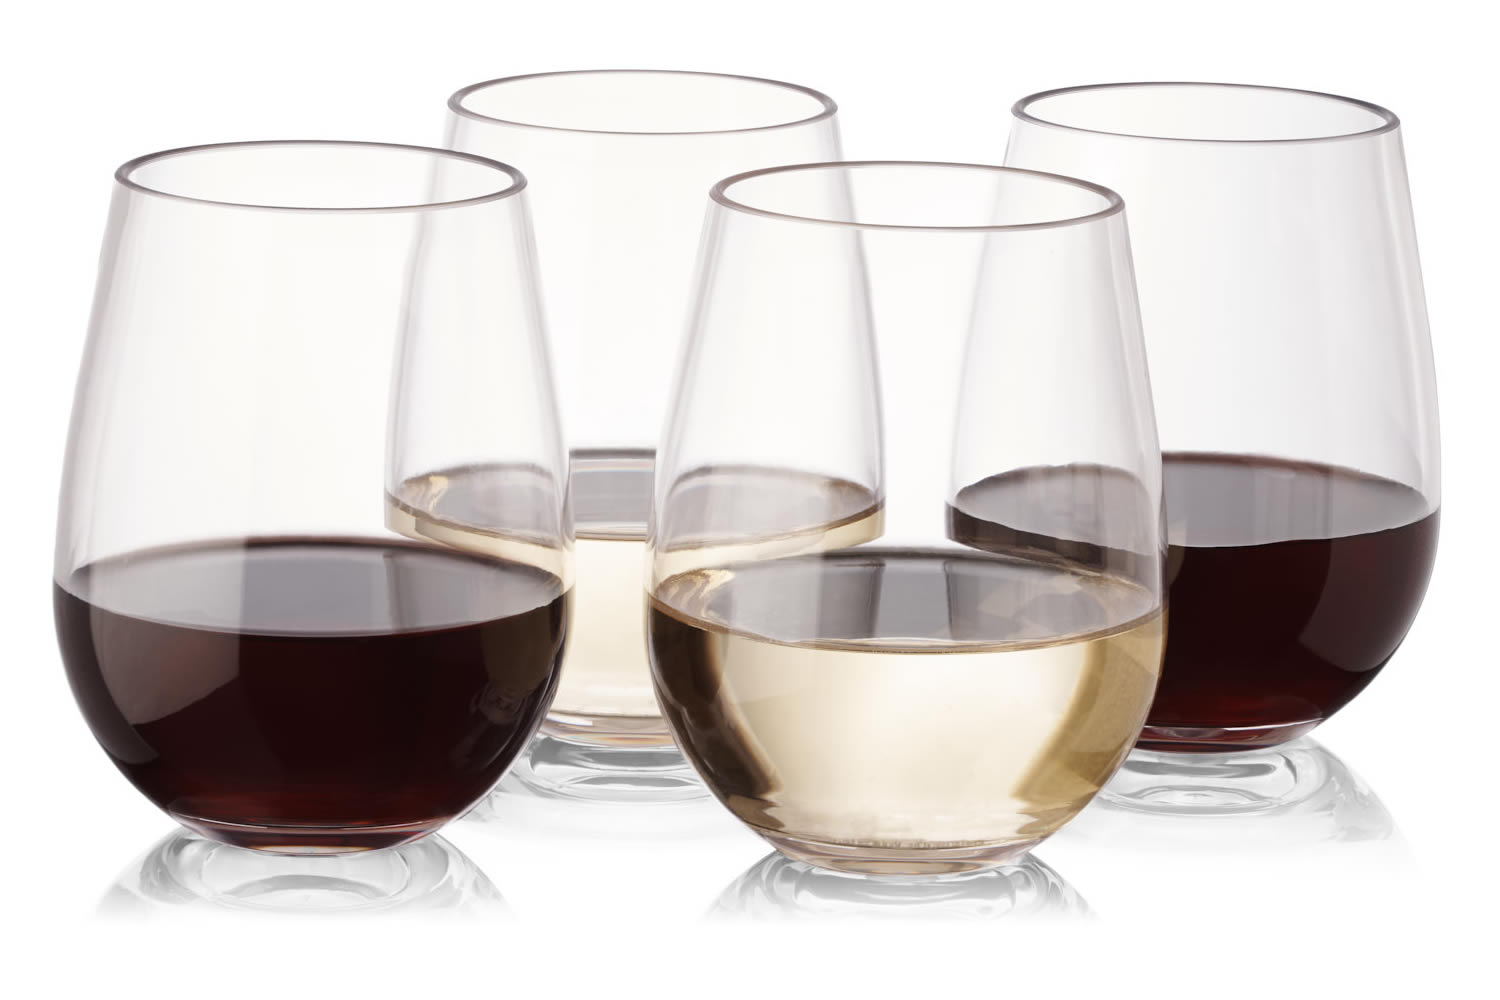 plastic outdoor wine glasses set of 8 stemless unbreakable reusable high - Plastic Stemless Wine Glasses